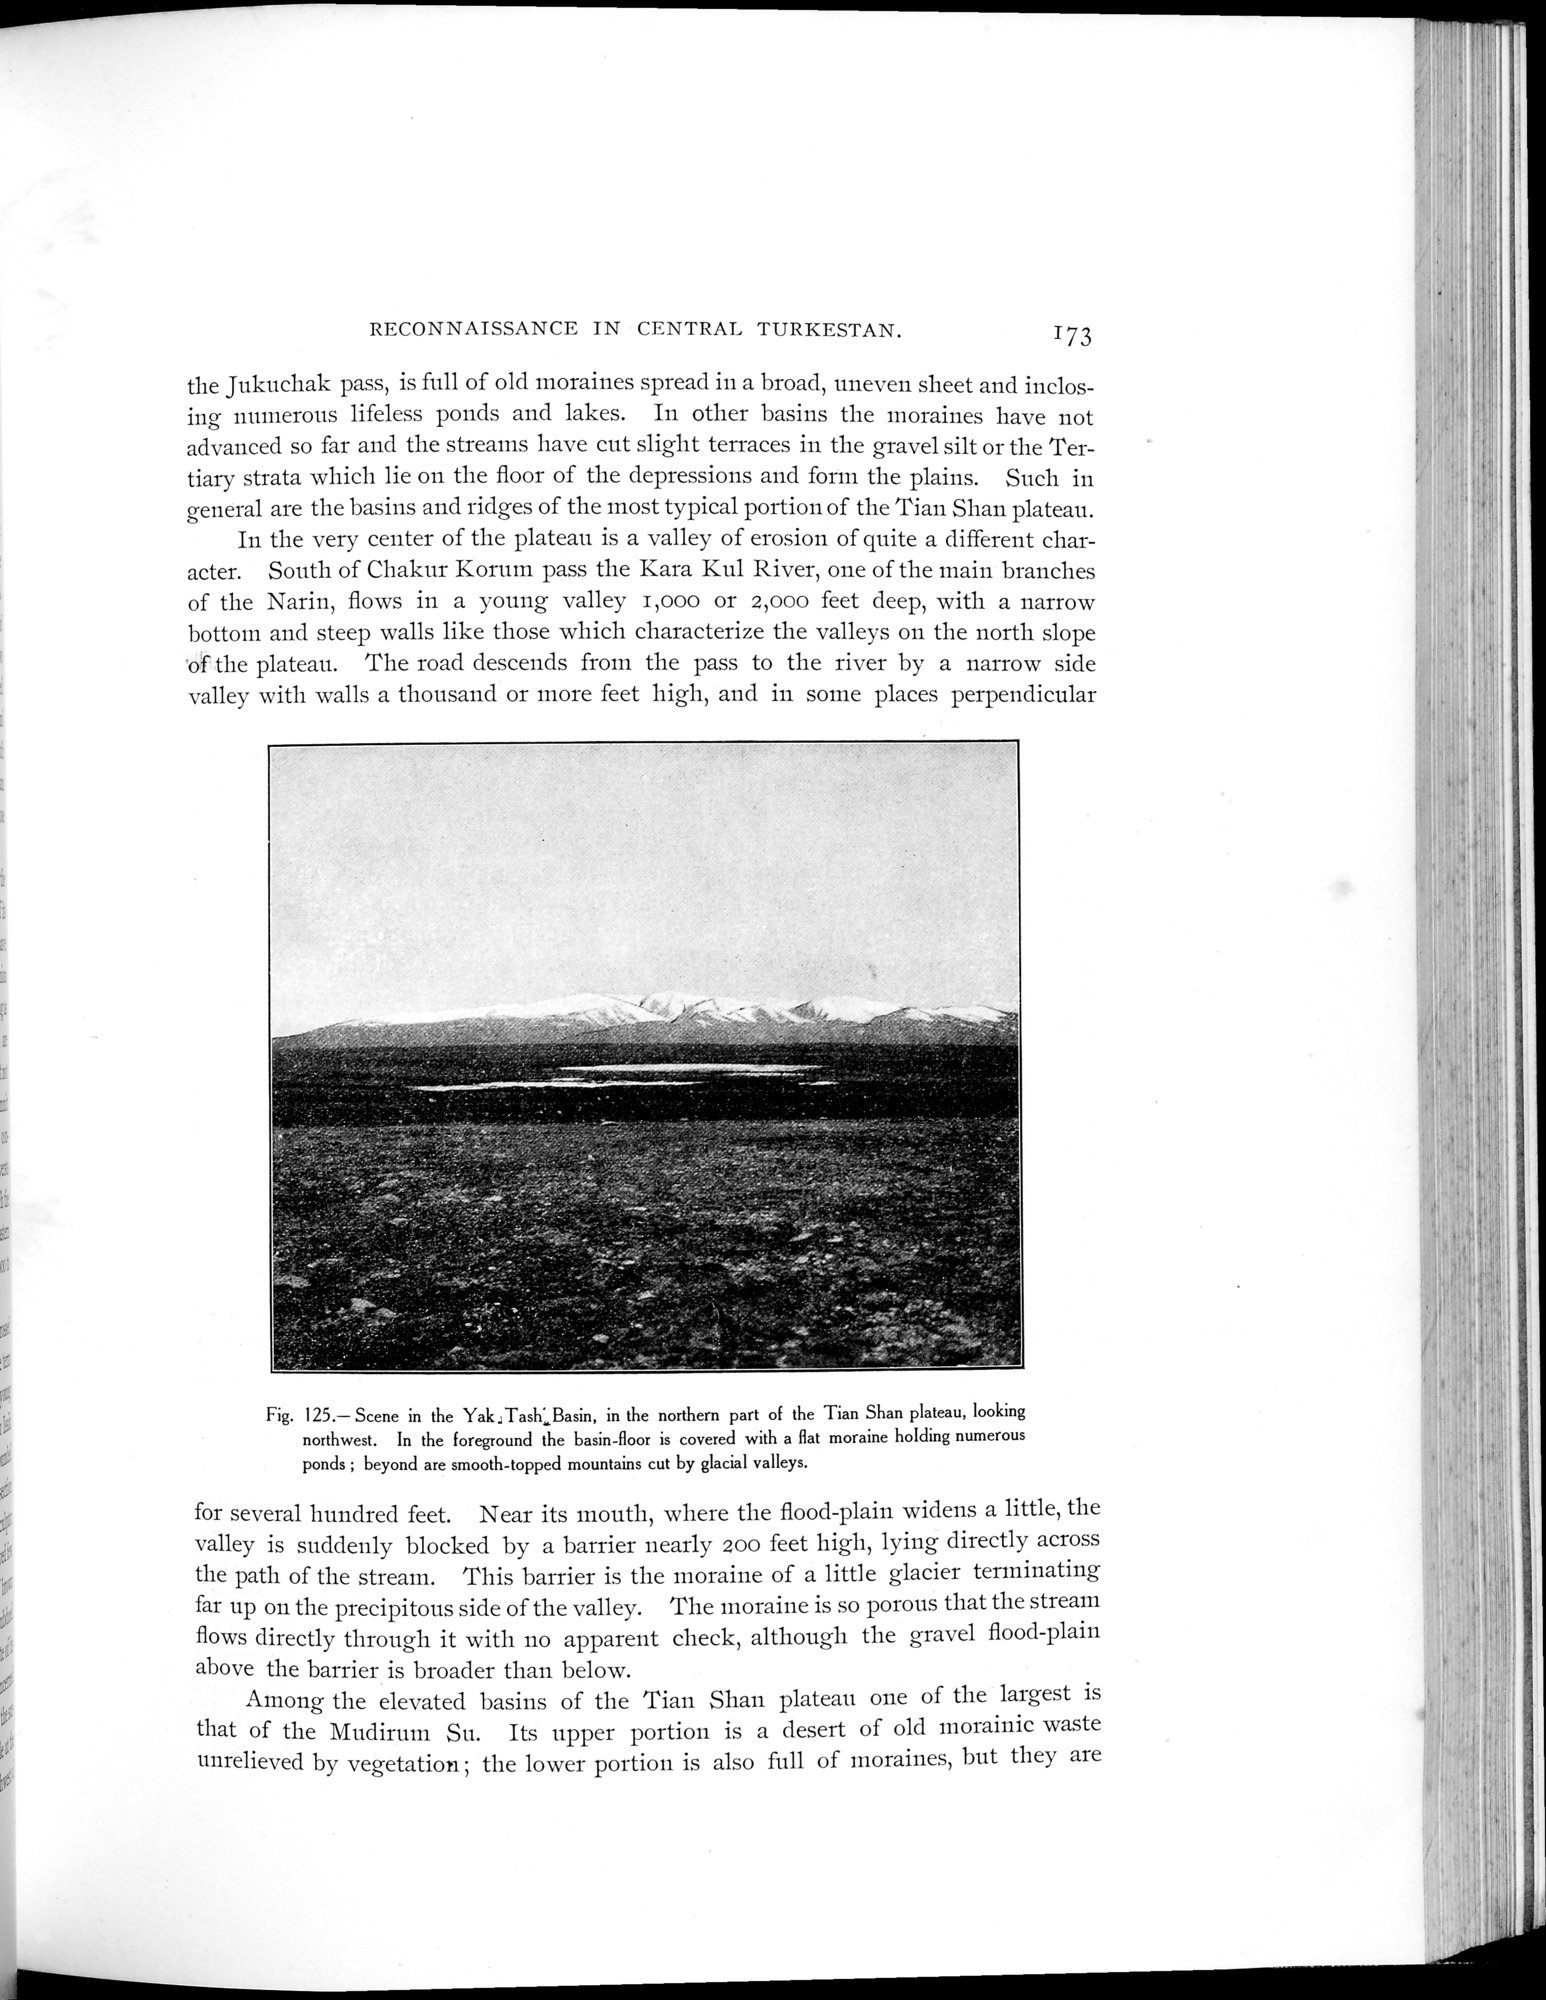 Explorations in Turkestan 1903 : vol.1 / Page 203 (Grayscale High Resolution Image)